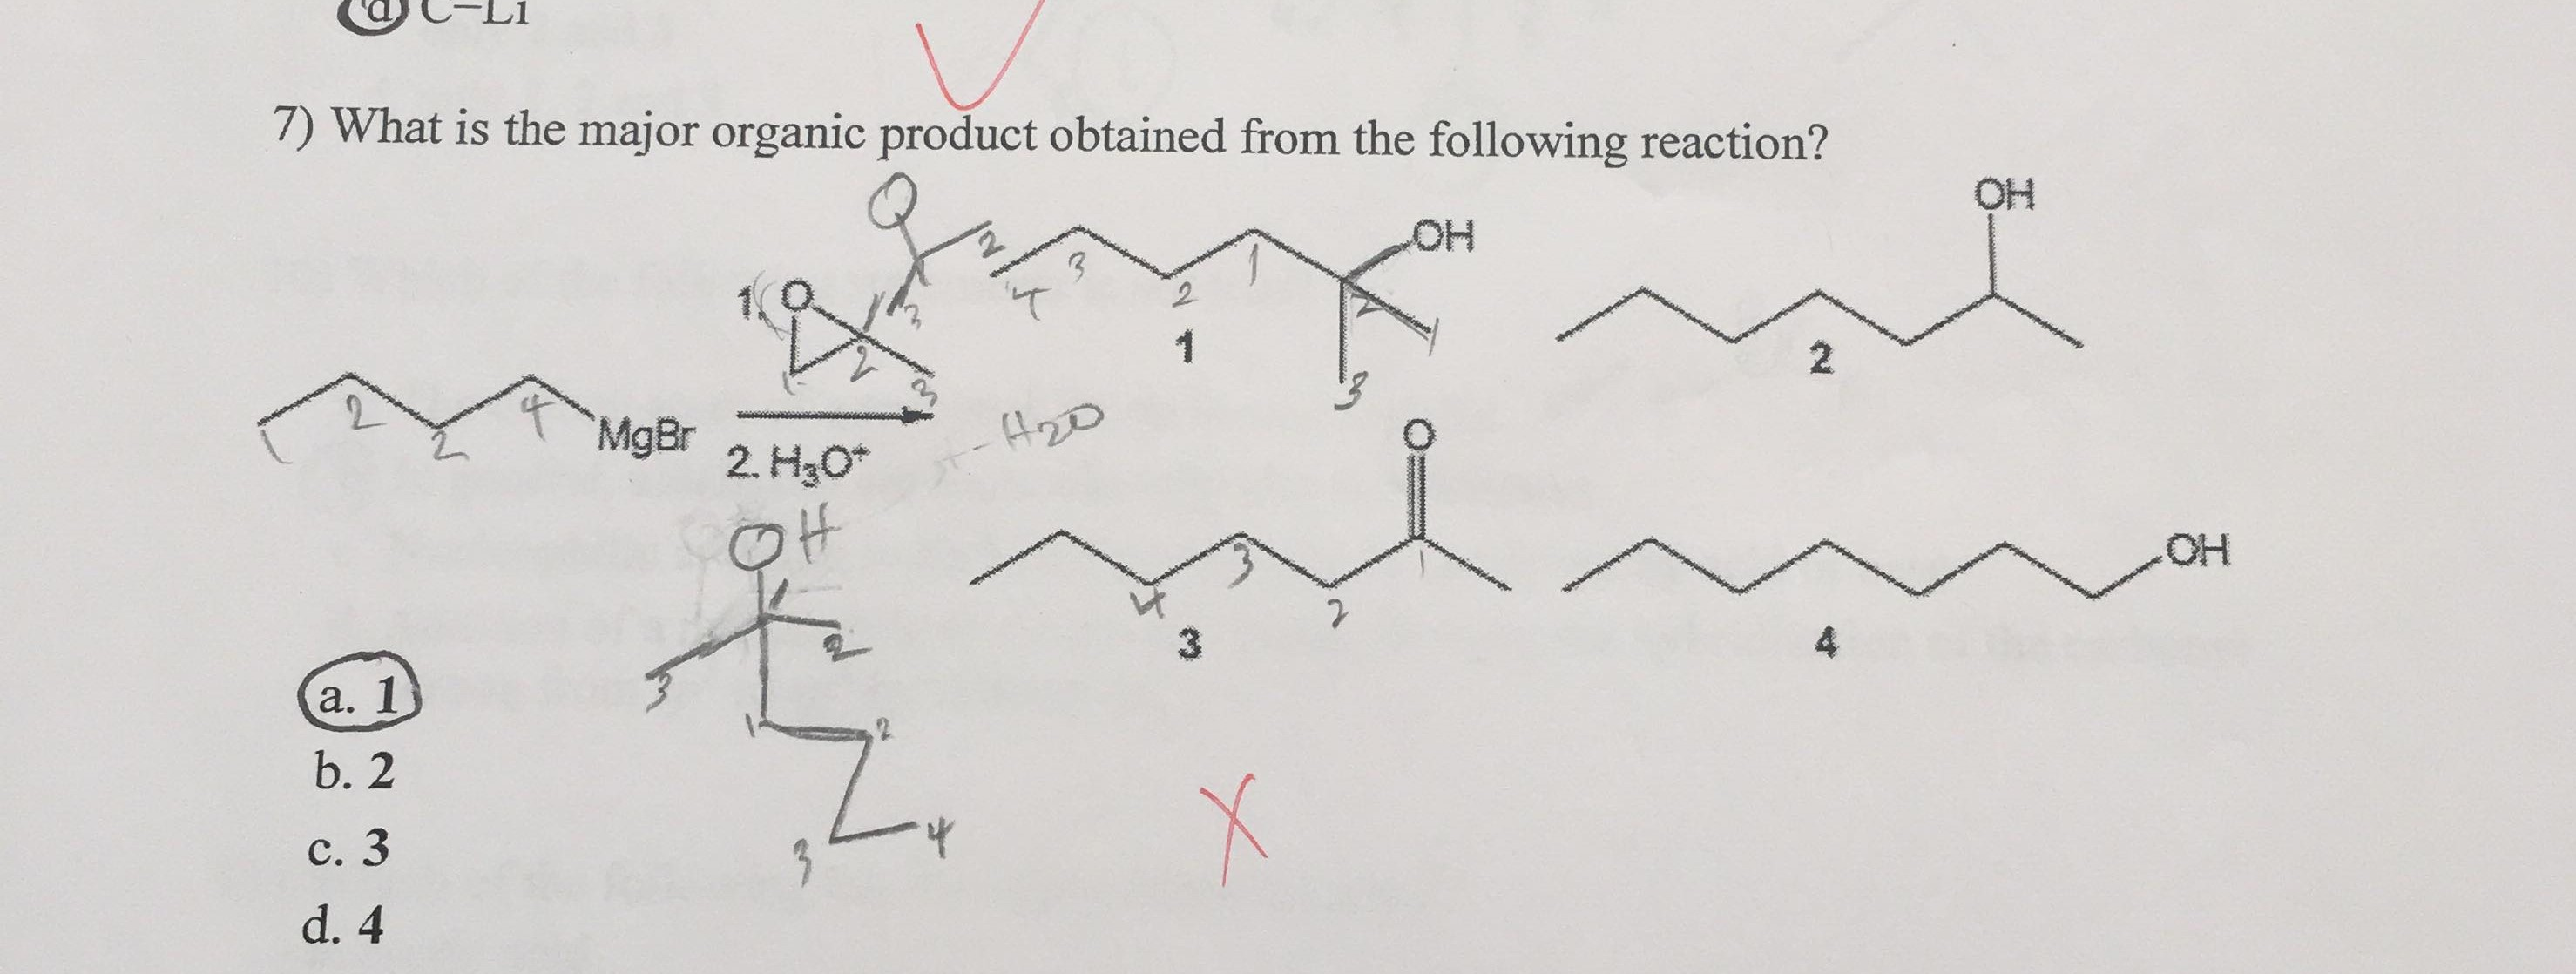 What is the major organic product obtained from the